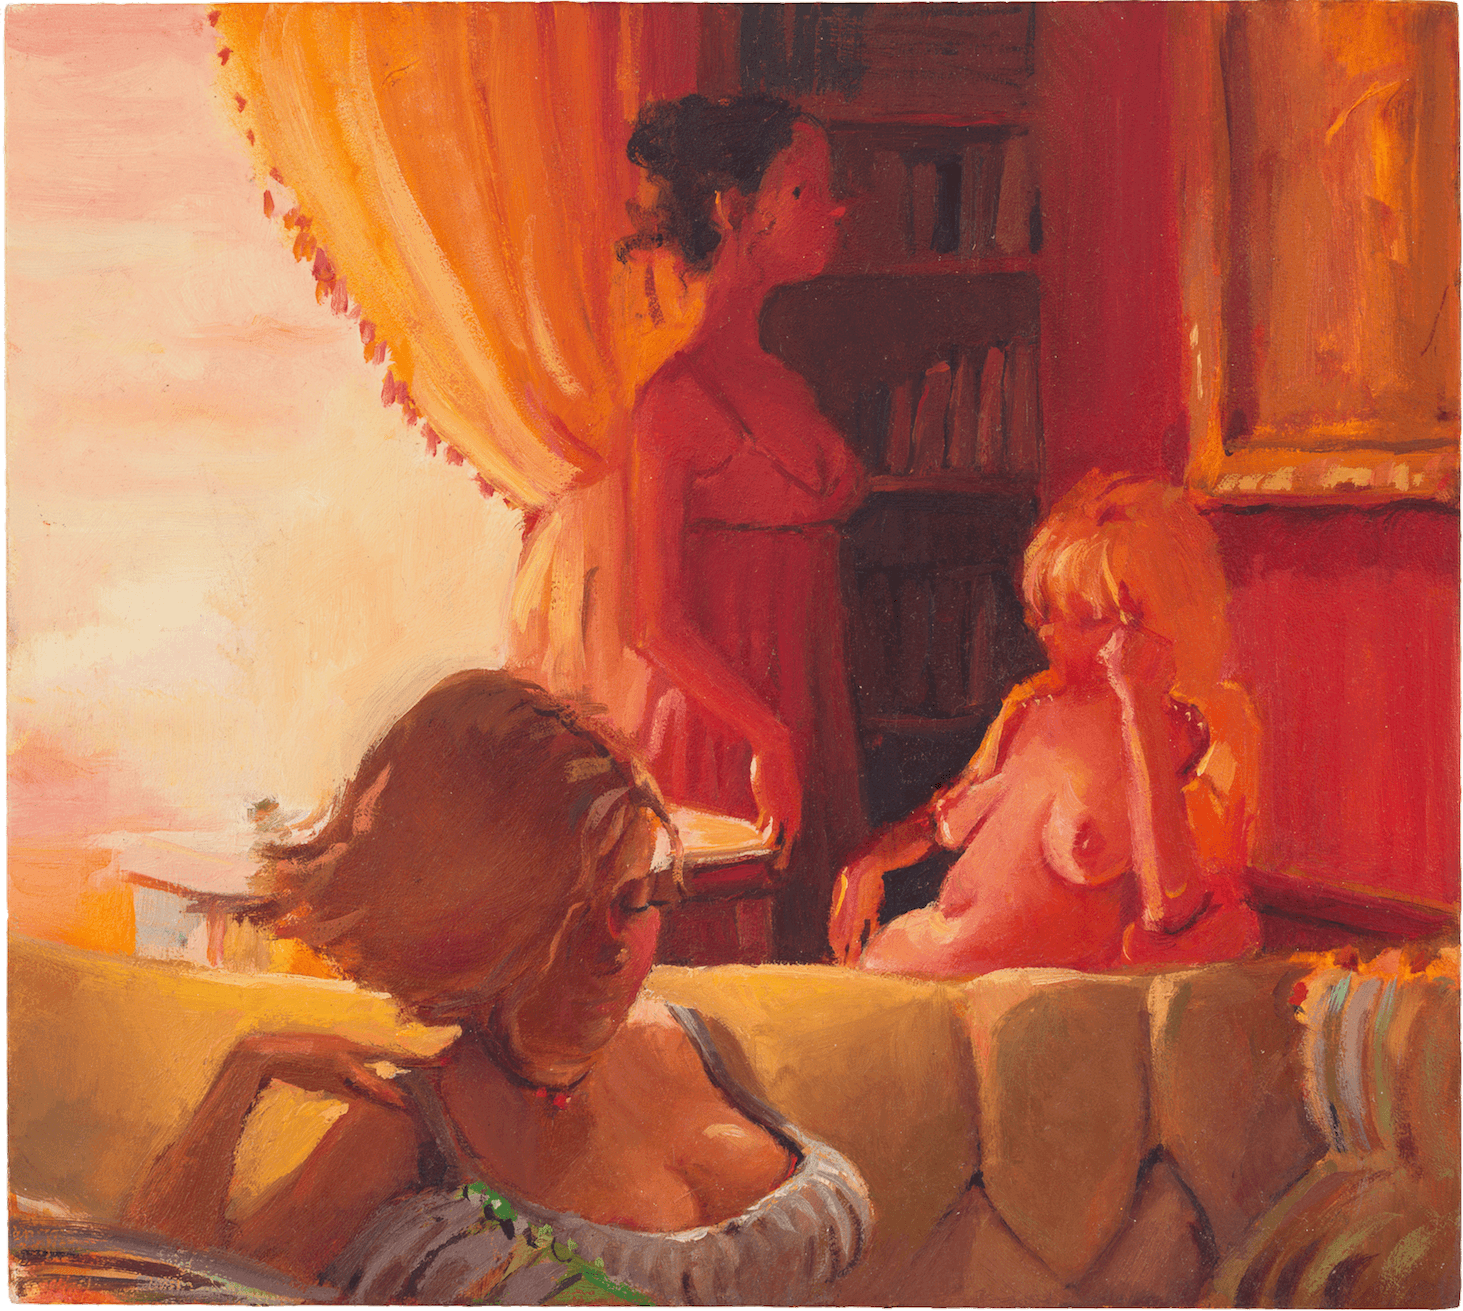 Lisa Yuskavage, Northview Afternoon, 2000, oil on panel, 8 7/8 x 9 7/8 inches (Collection David Teiger Trust, image courtesy of David Zwirner Gallery)